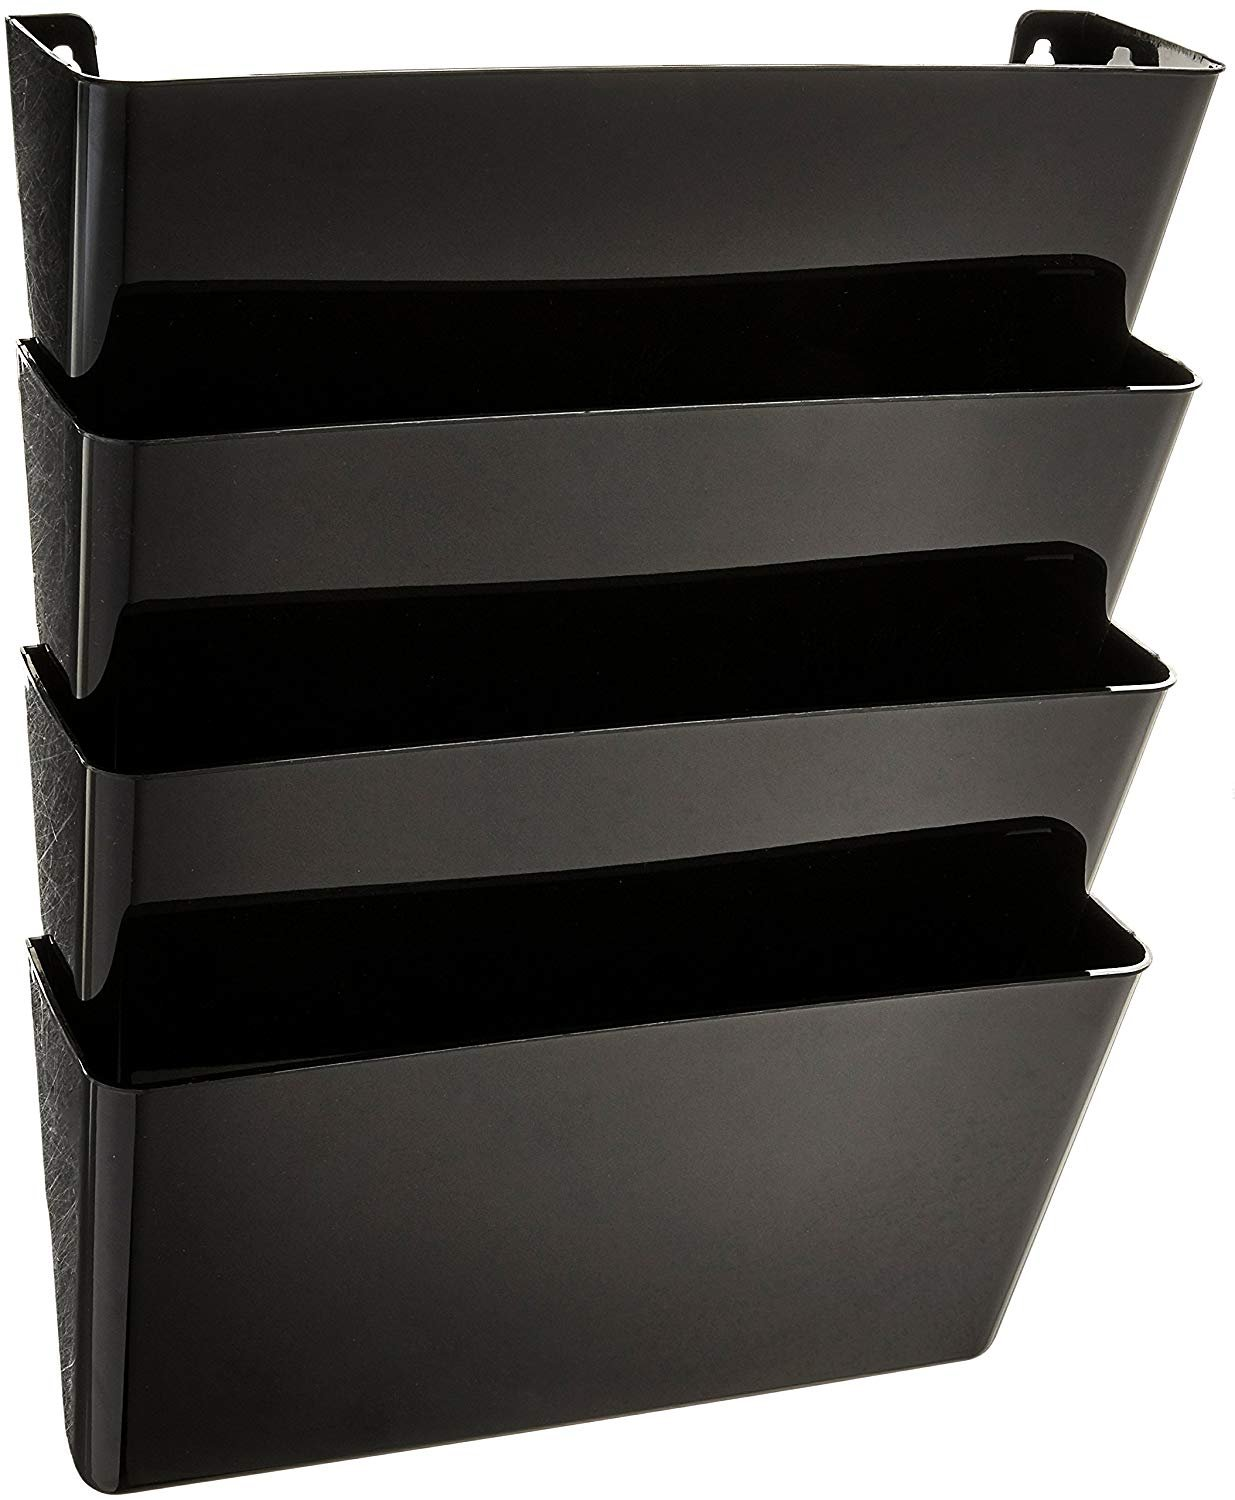 1InTheHome Expandable Wall file organizer, Black, Letter-Sized, 4 pocket